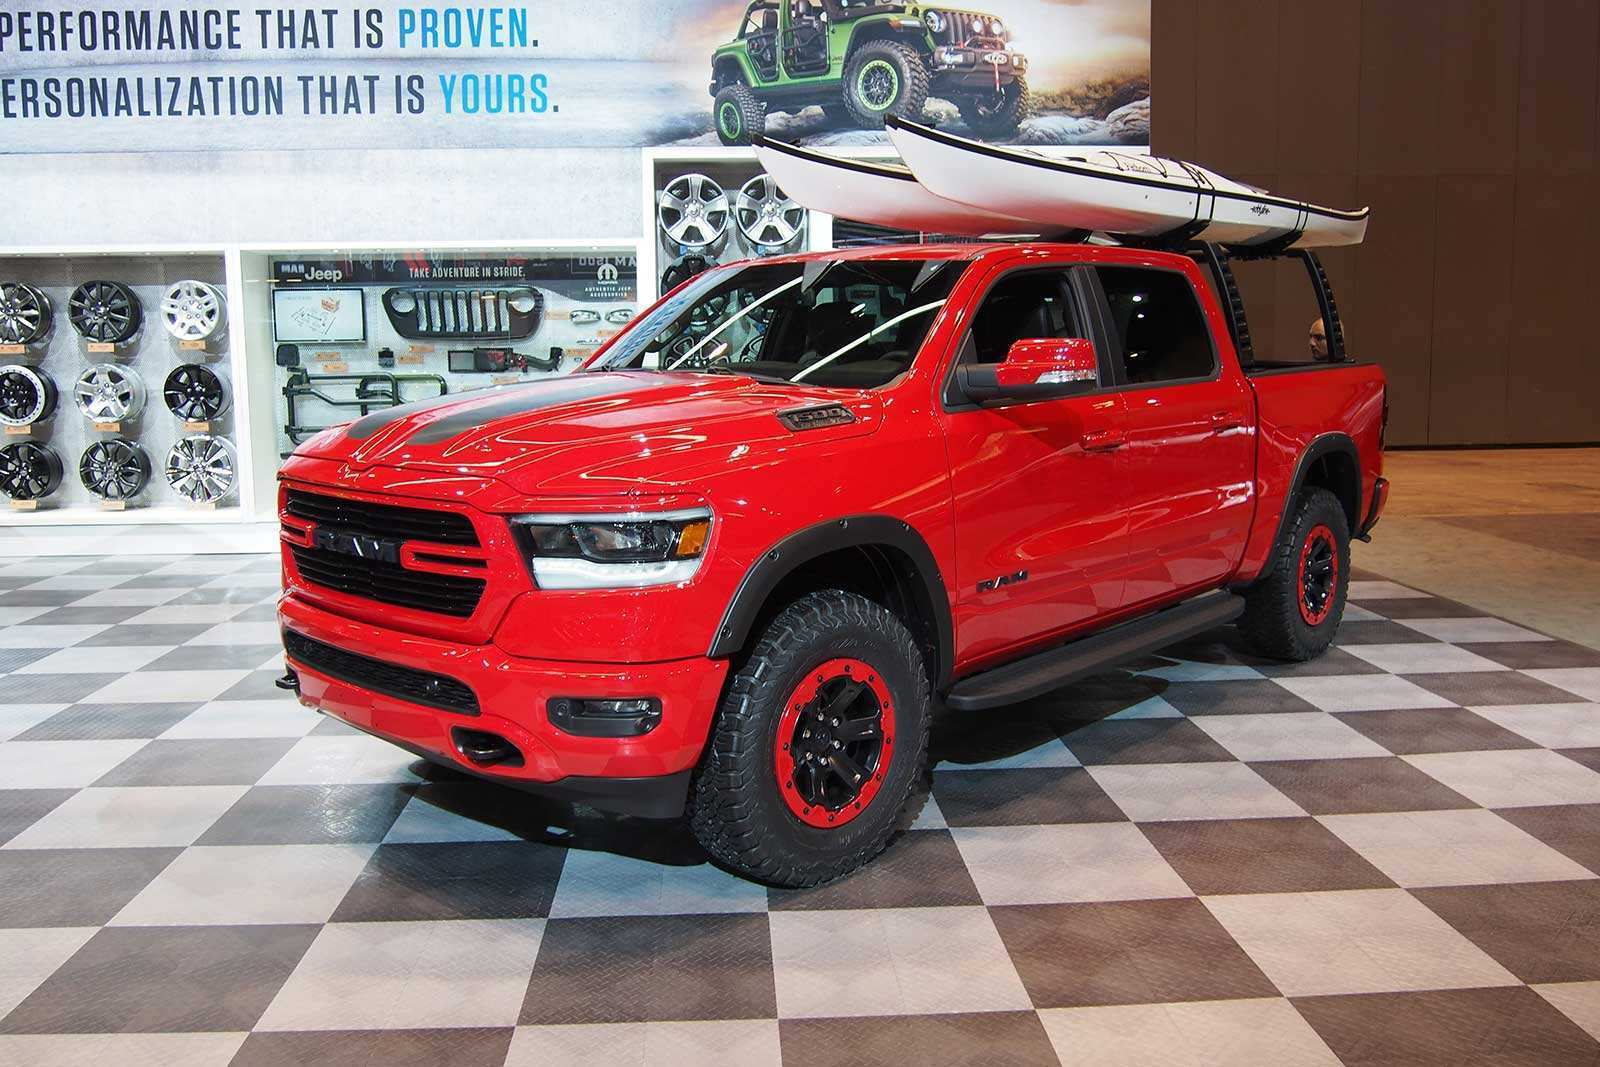 27 Concept of 2019 Dodge Ram Forum Specs and Review with 2019 Dodge Ram Forum